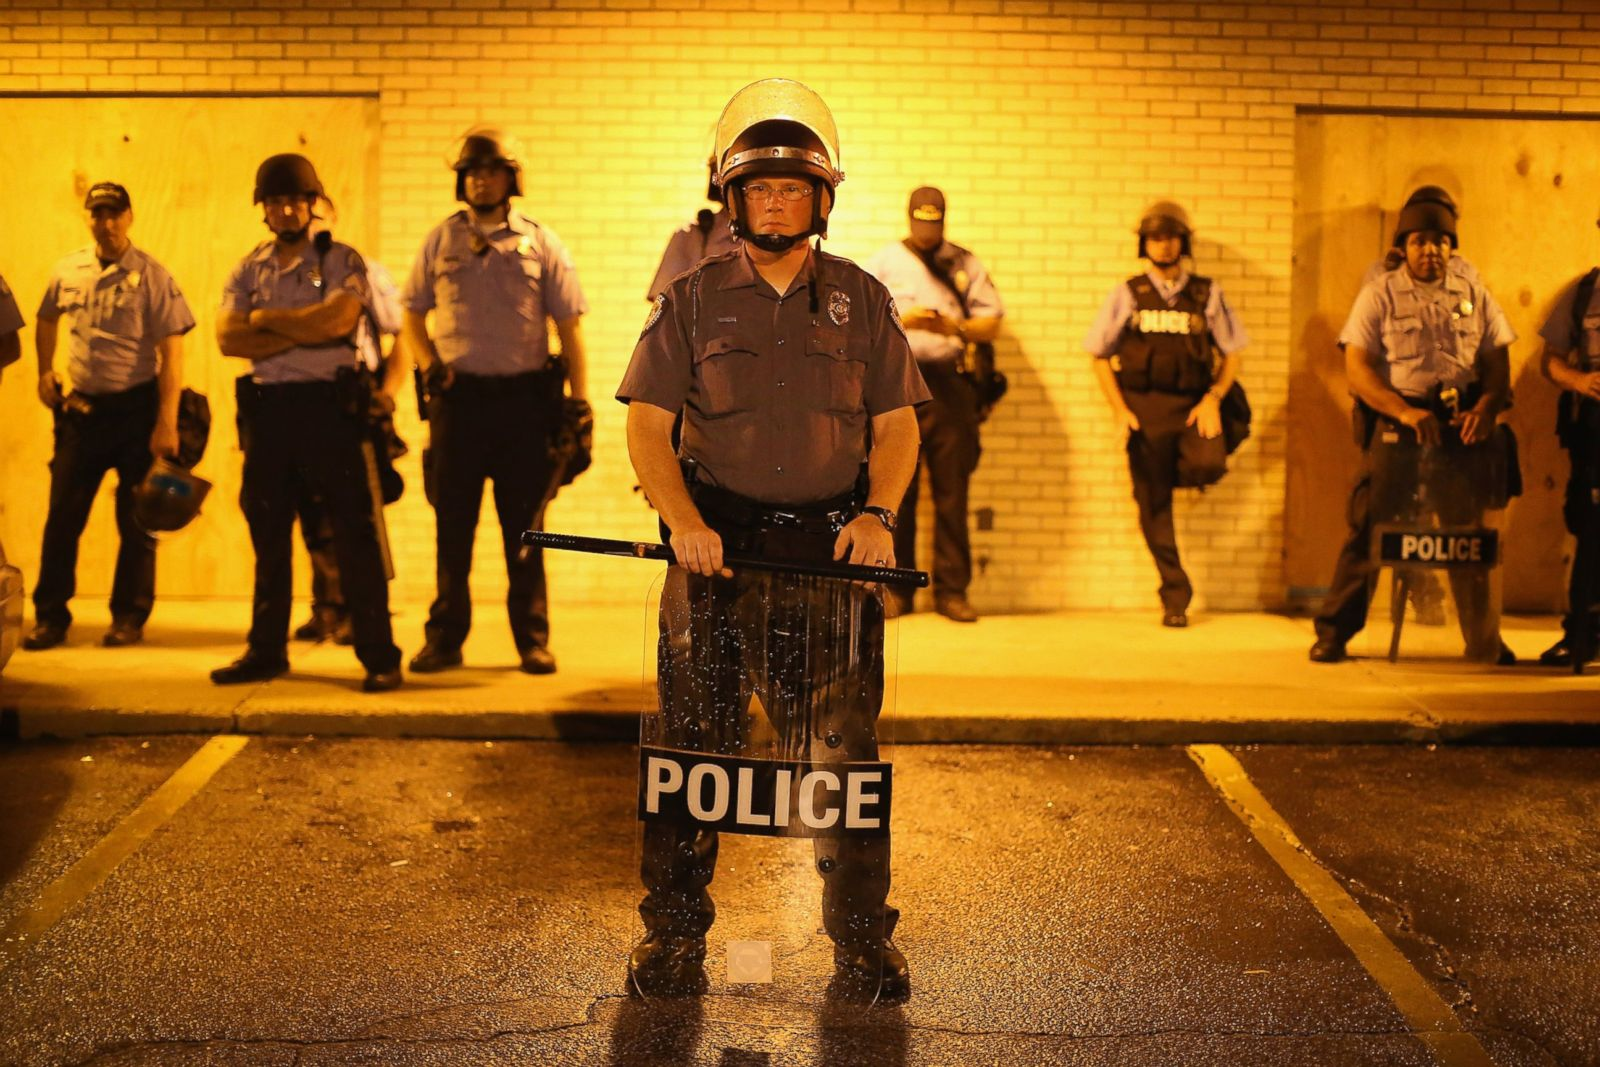 Powerful Scenes From Ferguson, Missouri Photos - ABC News